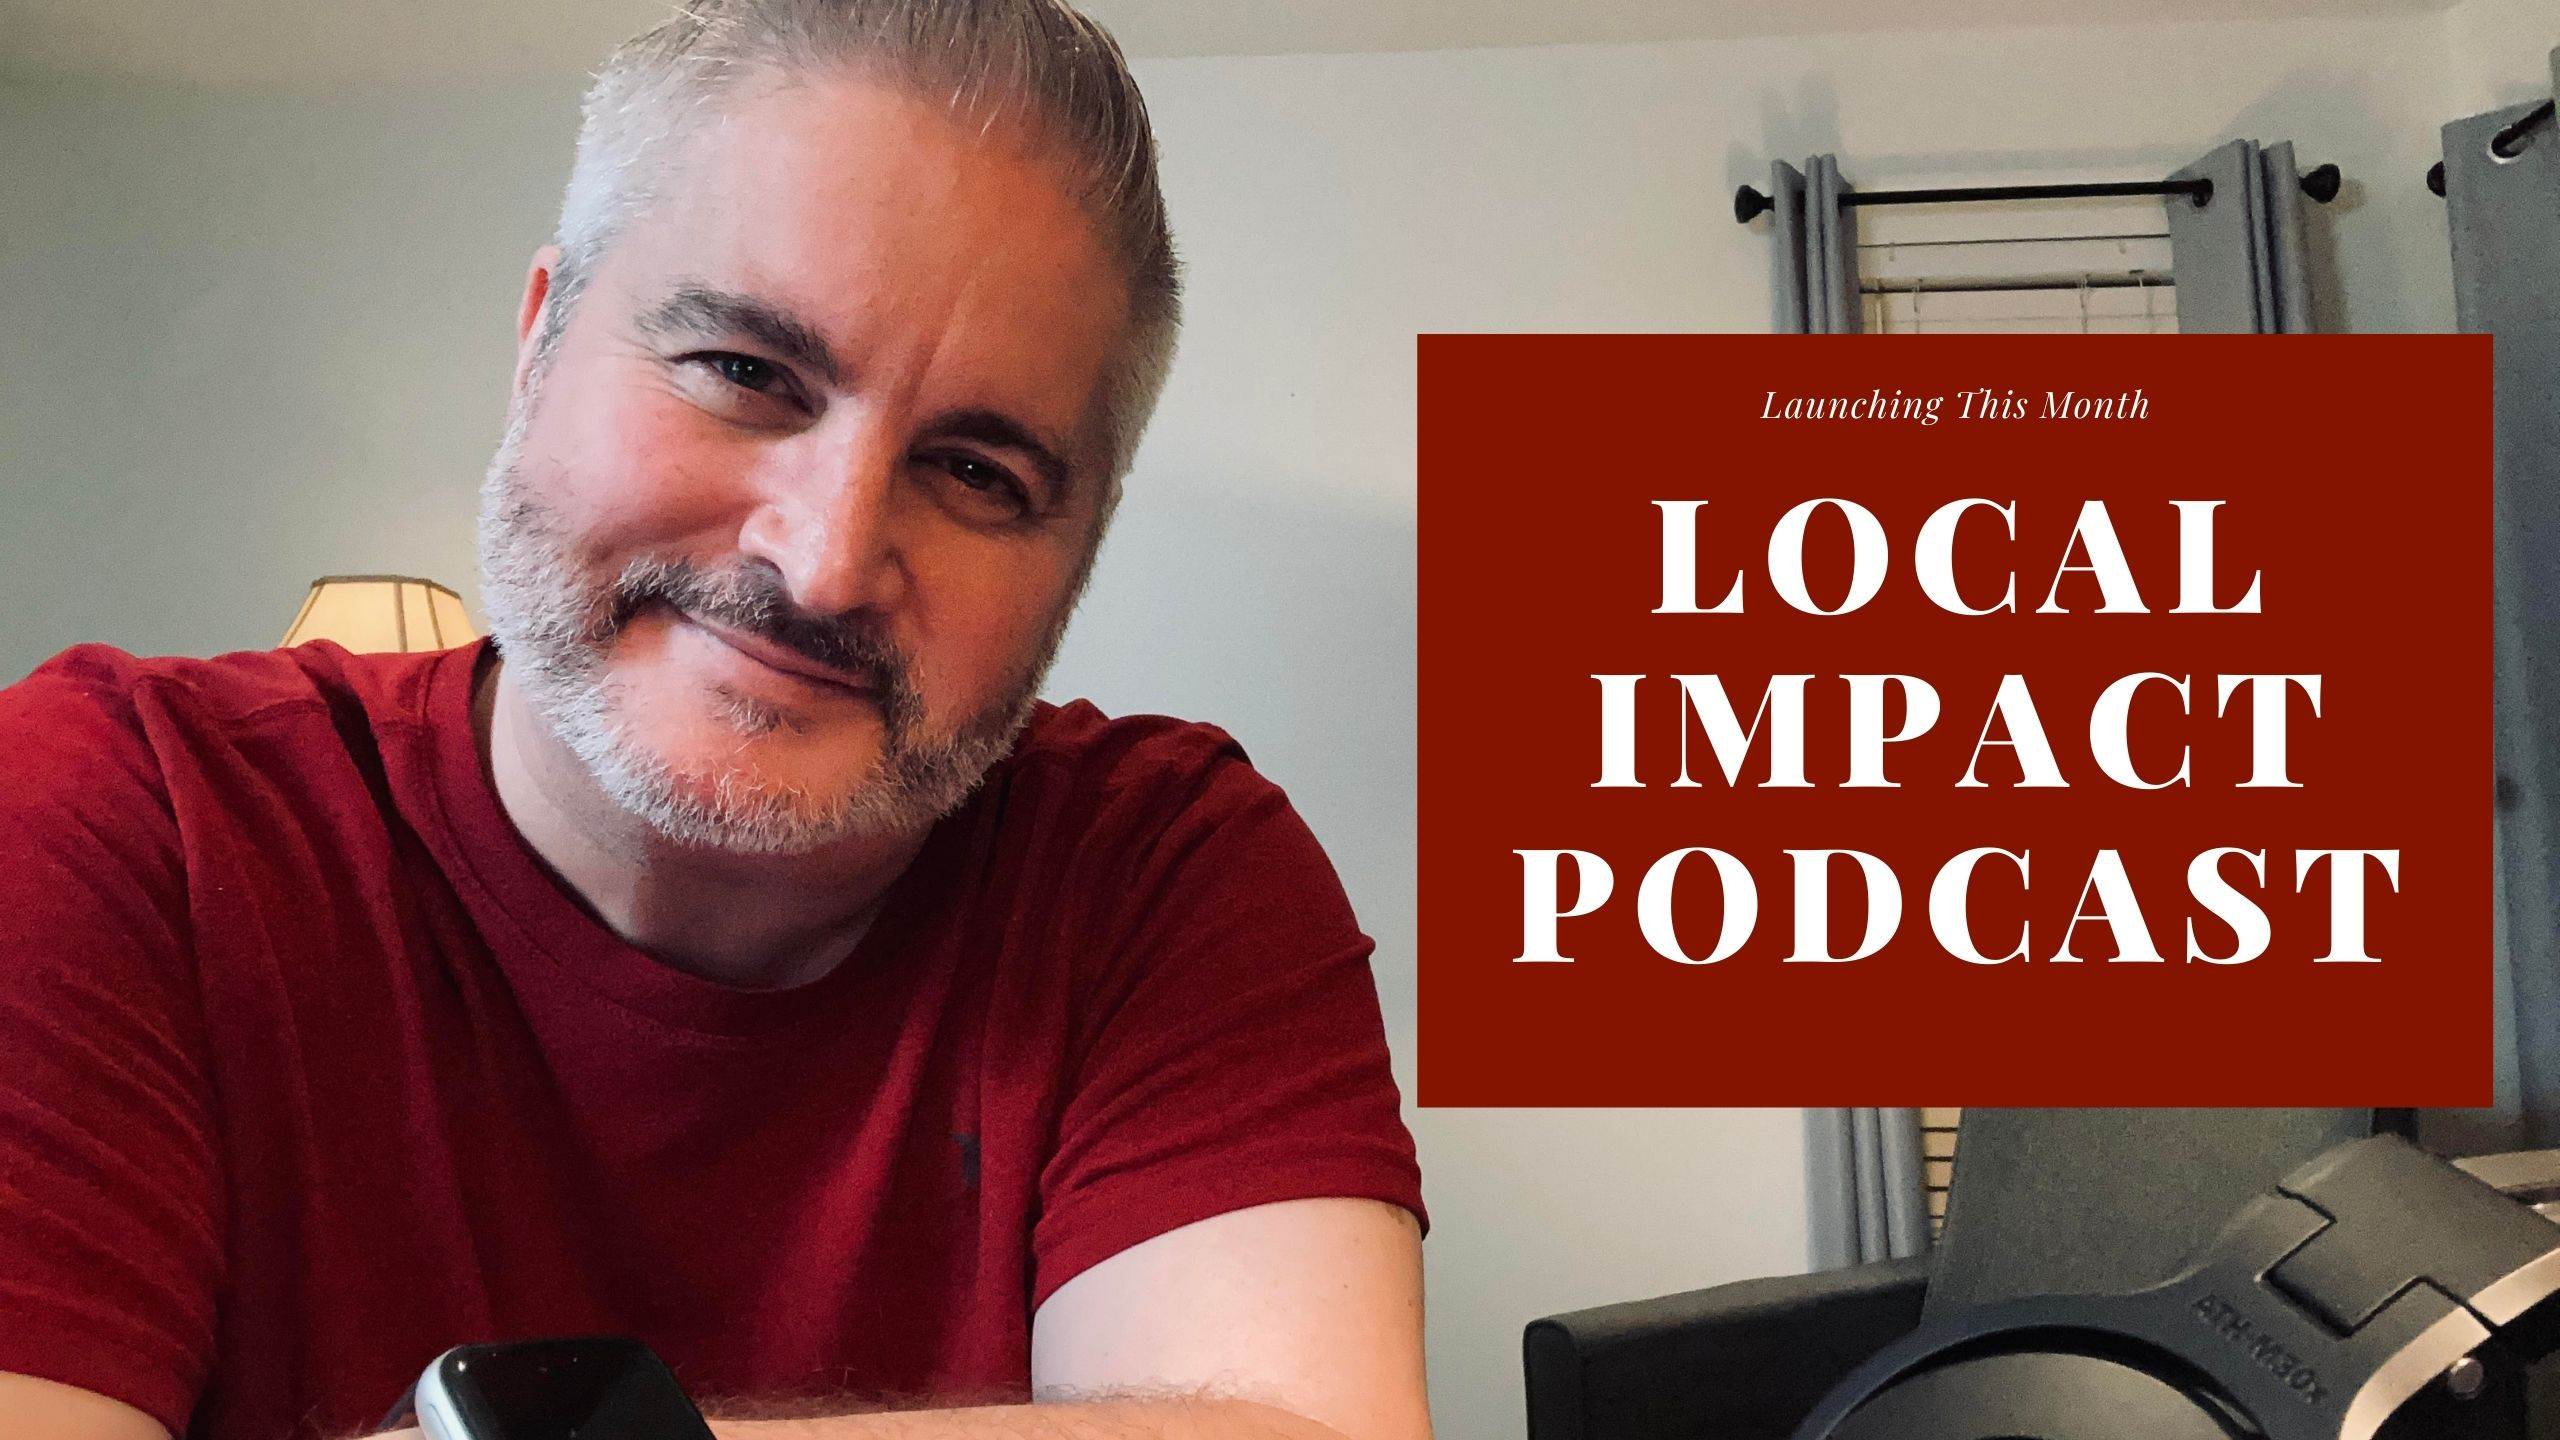 Podcast Introduction